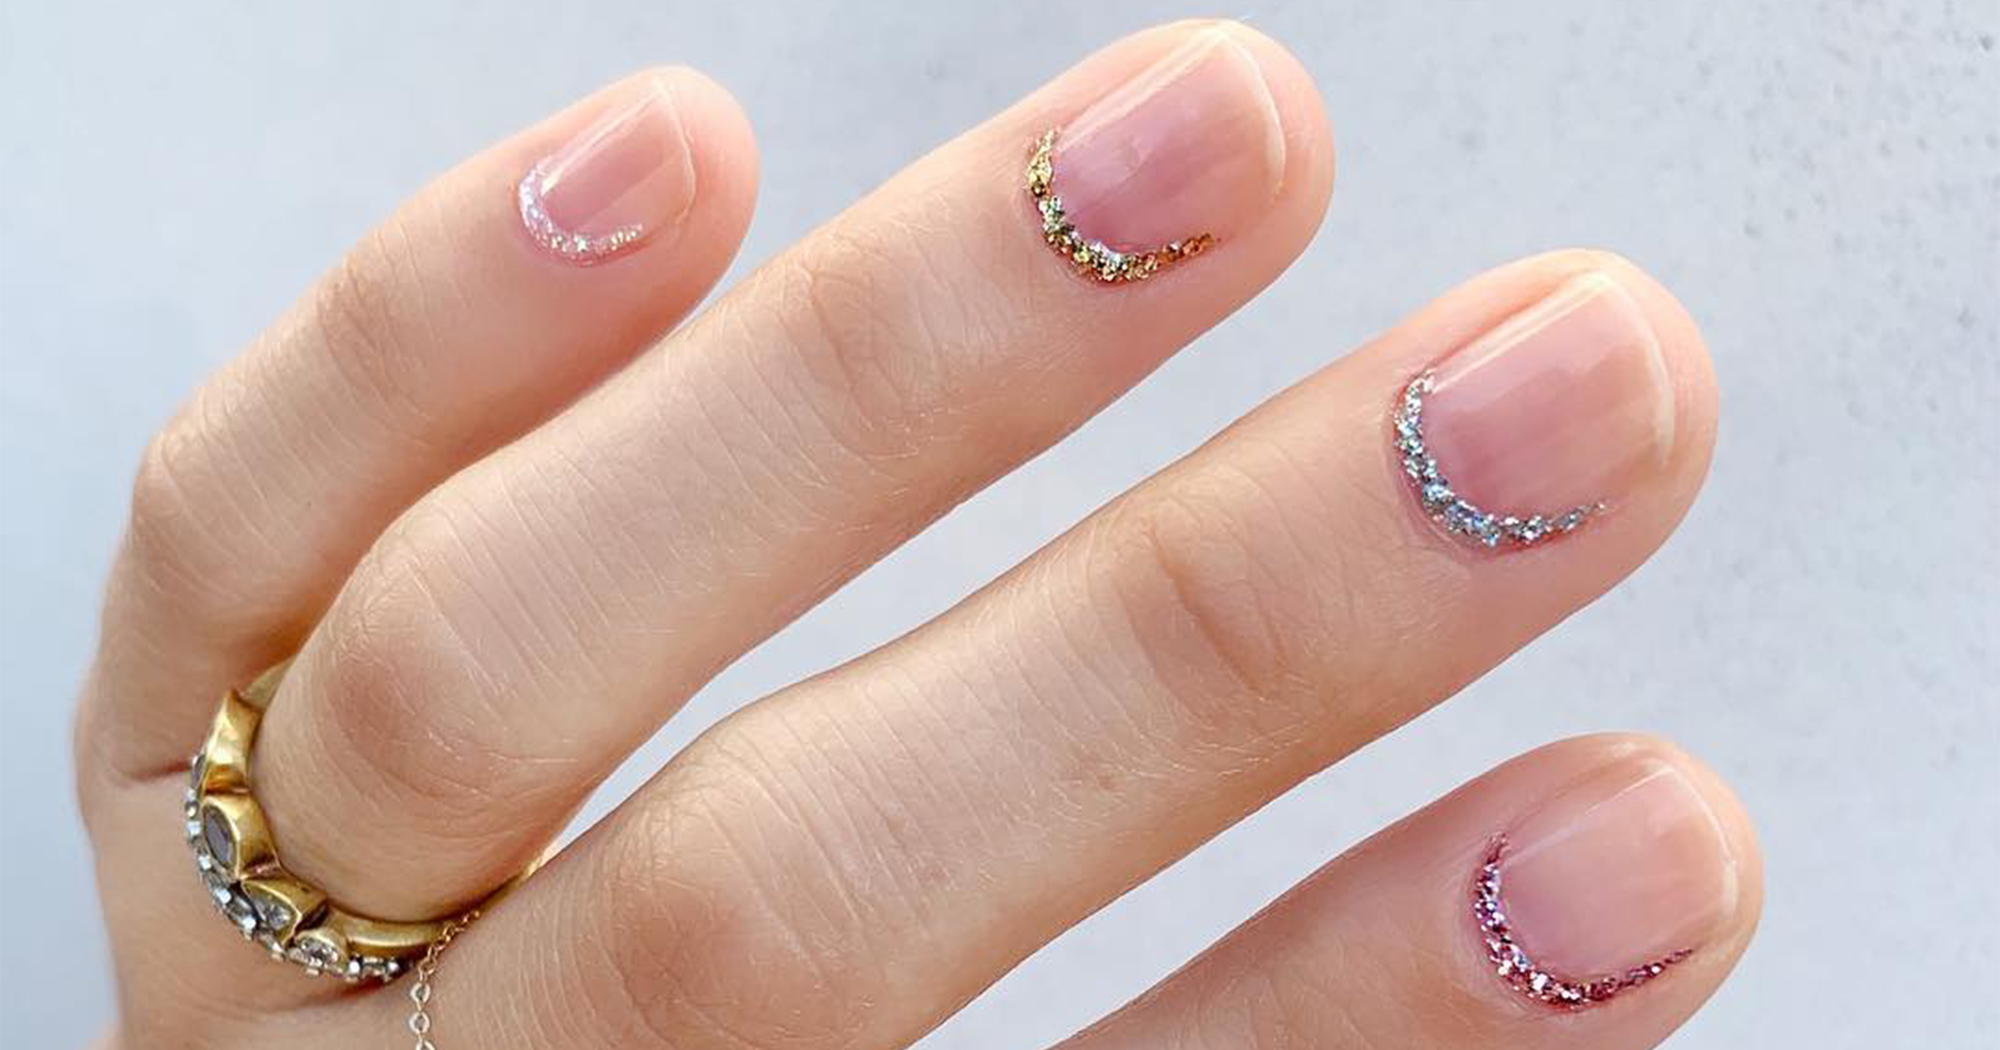 Cuticle Nail Art Is The New Minimalist Manicure Trend